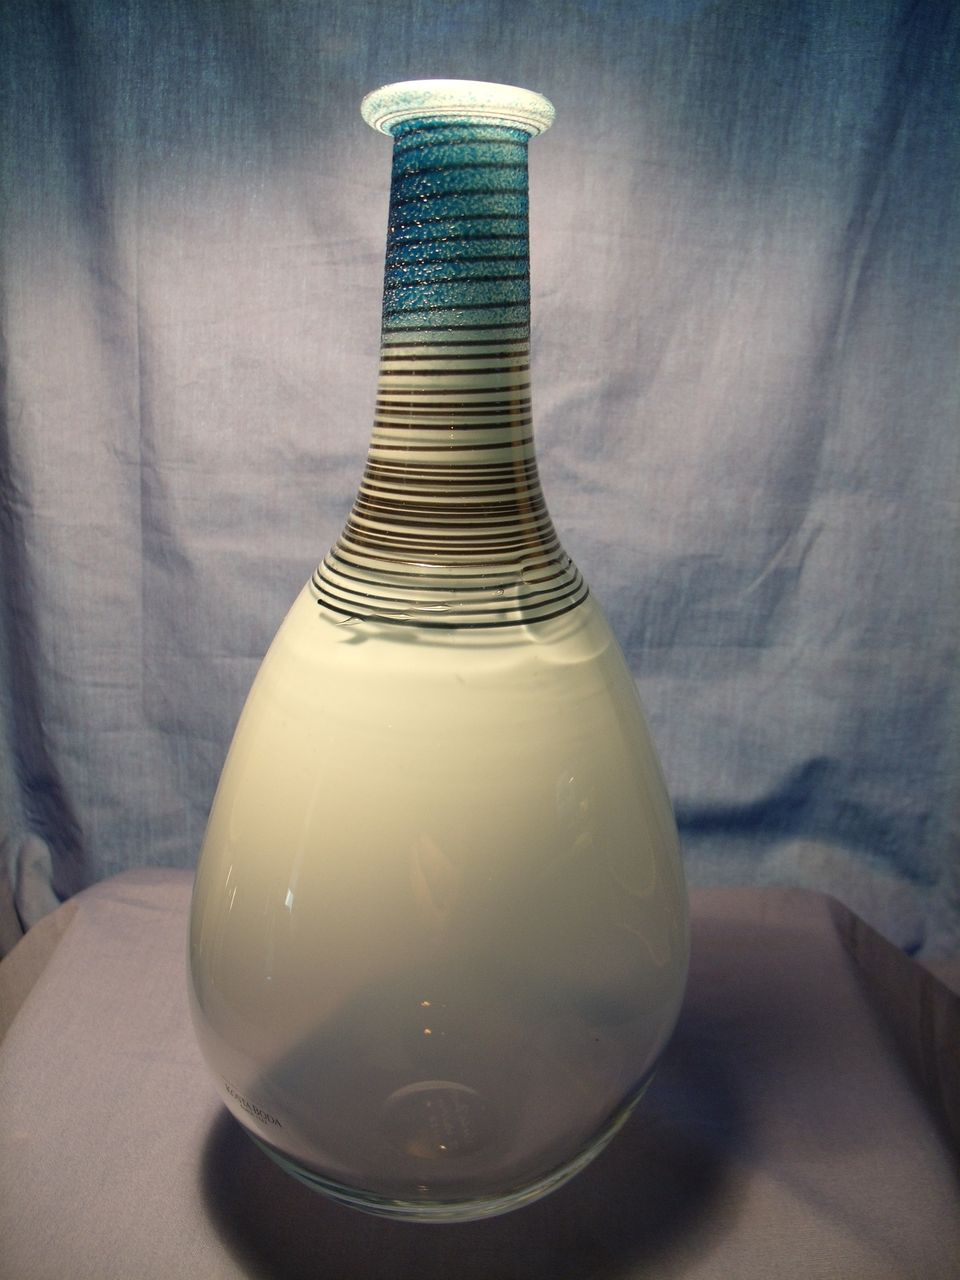 kosta boda bottle vase by bertil vallien from glassalley on ruby lane - roll over large image to magnify click large image to zoom